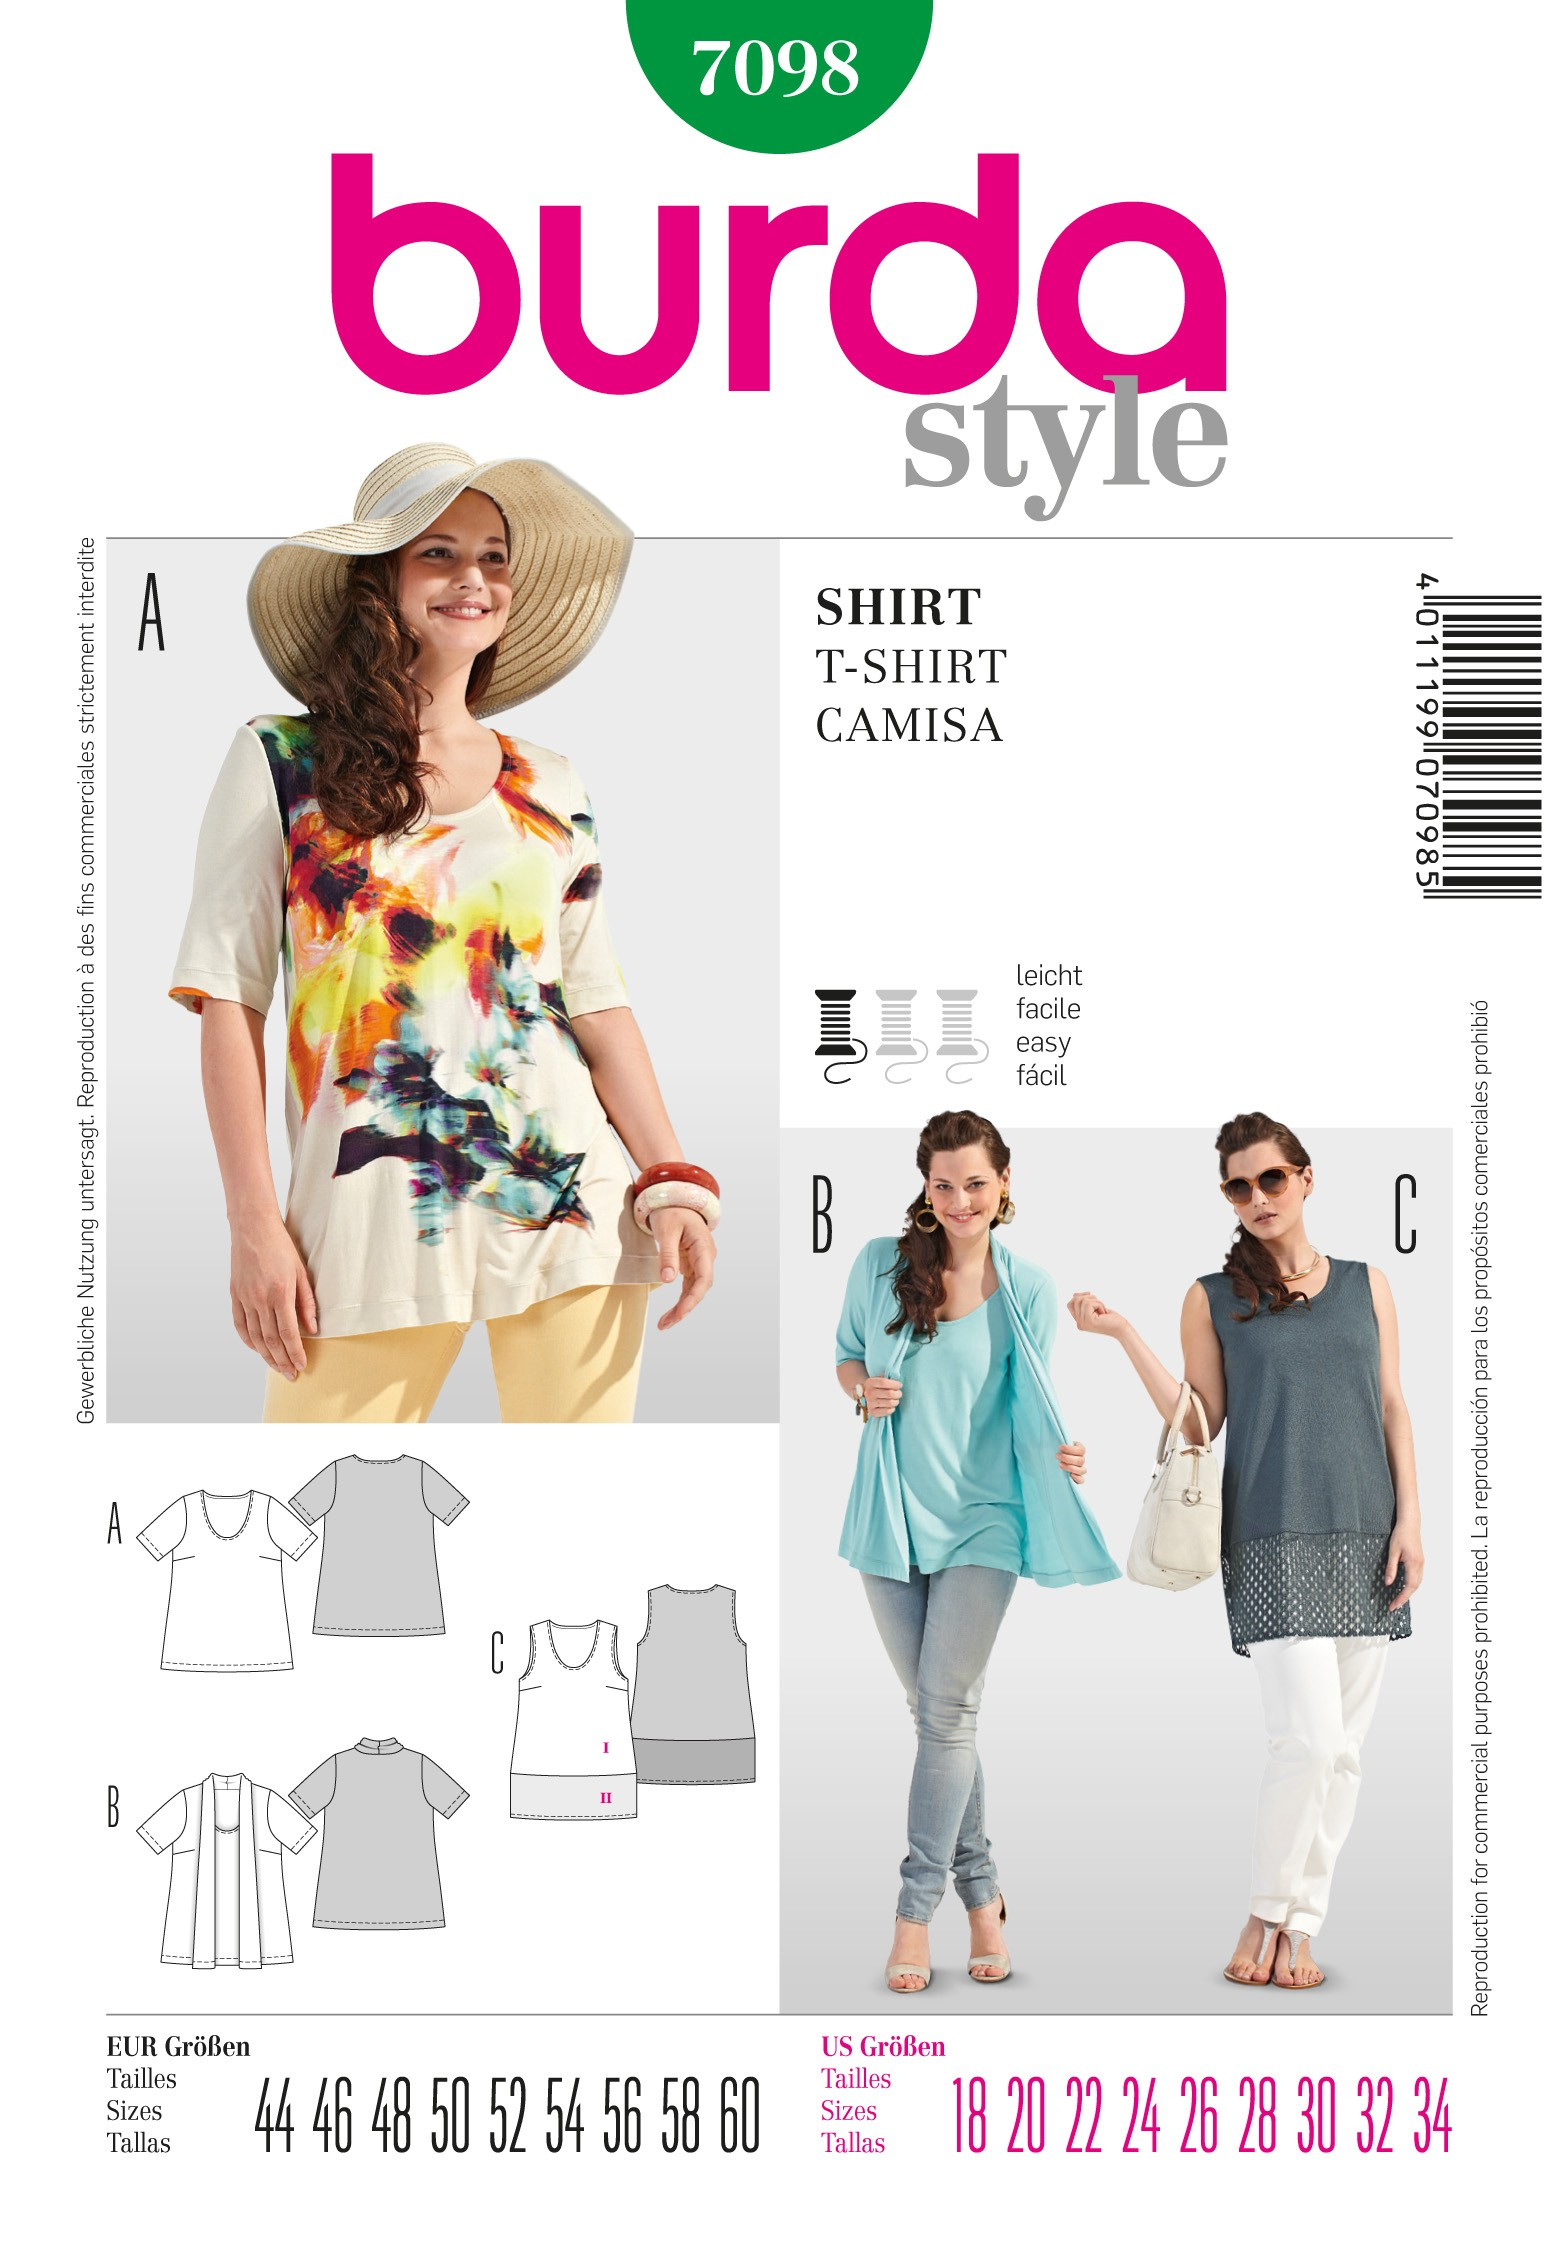 Burda Style Plus Size Light Flowing Shirt for Summer Sewing Pattern 7098